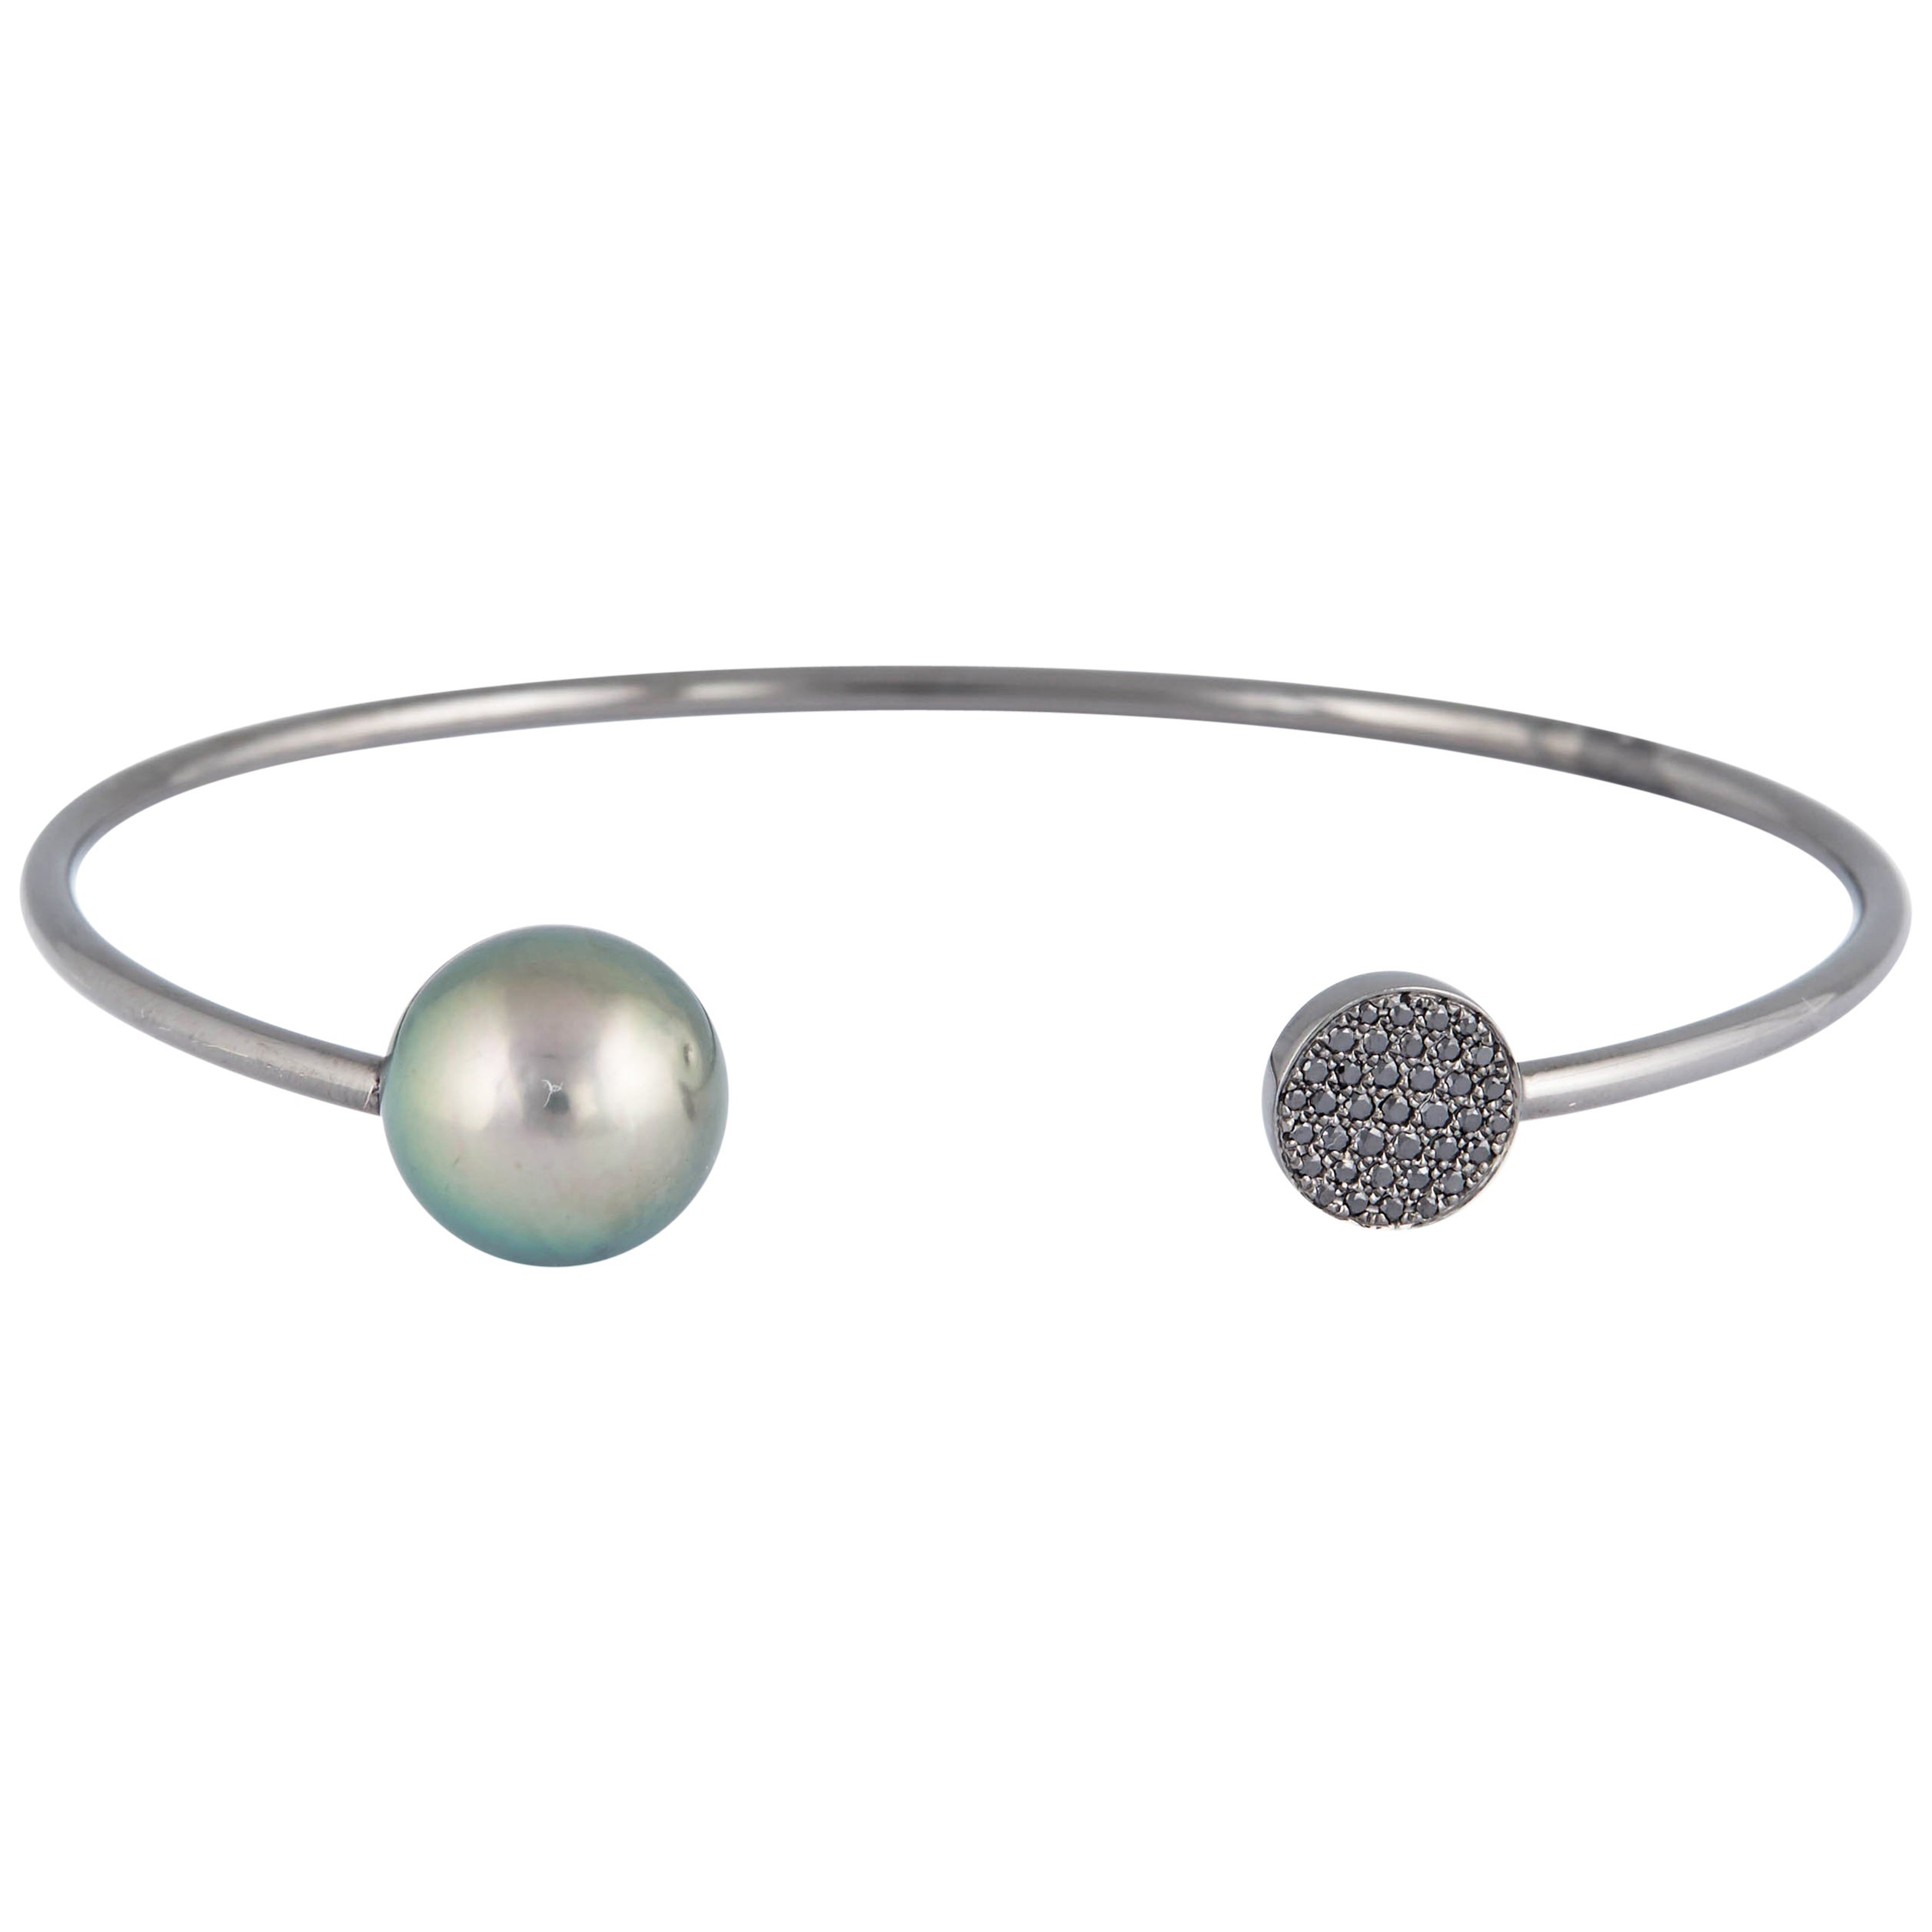 Black and White Diamond Tahitian Pearl Bangle 0.14 Carats 18K White Gold 11-12MM